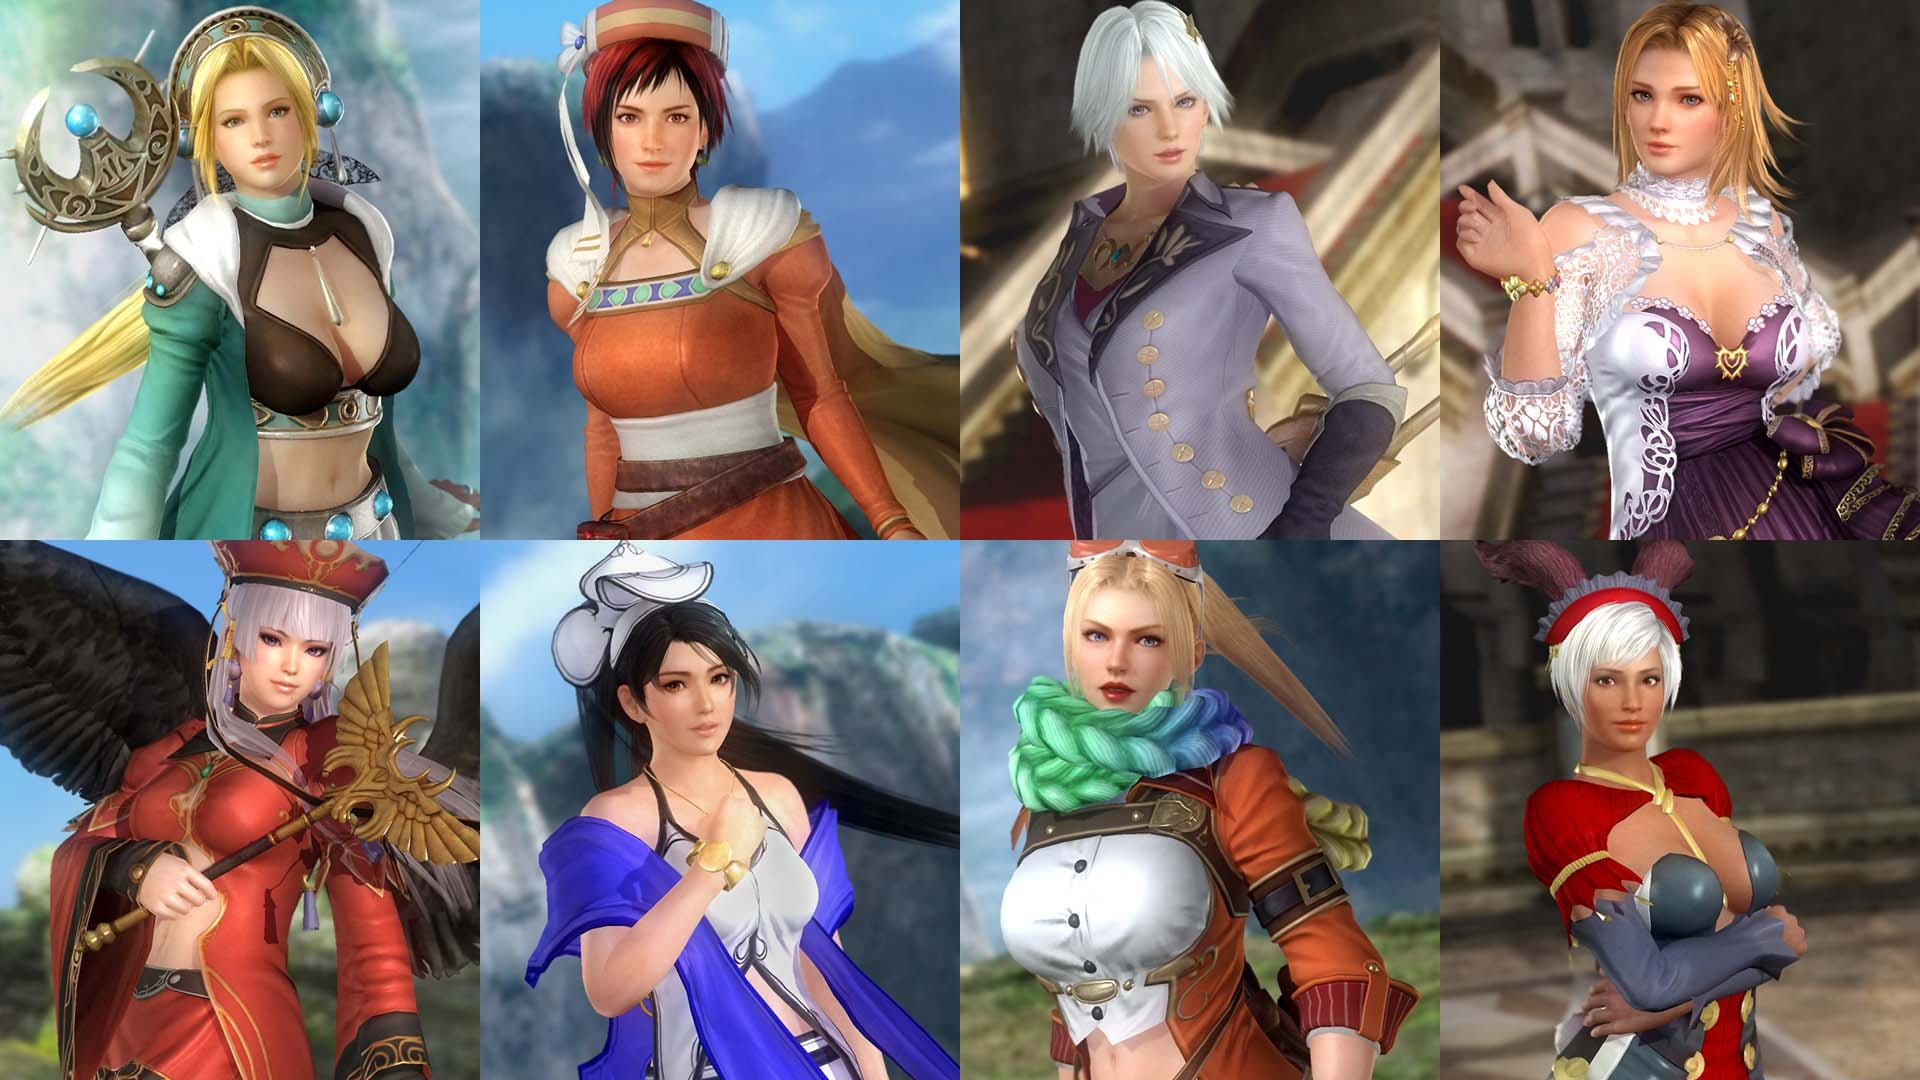 Dead Or Alive's Gust Costumes Are Almost Good Enough To Buy